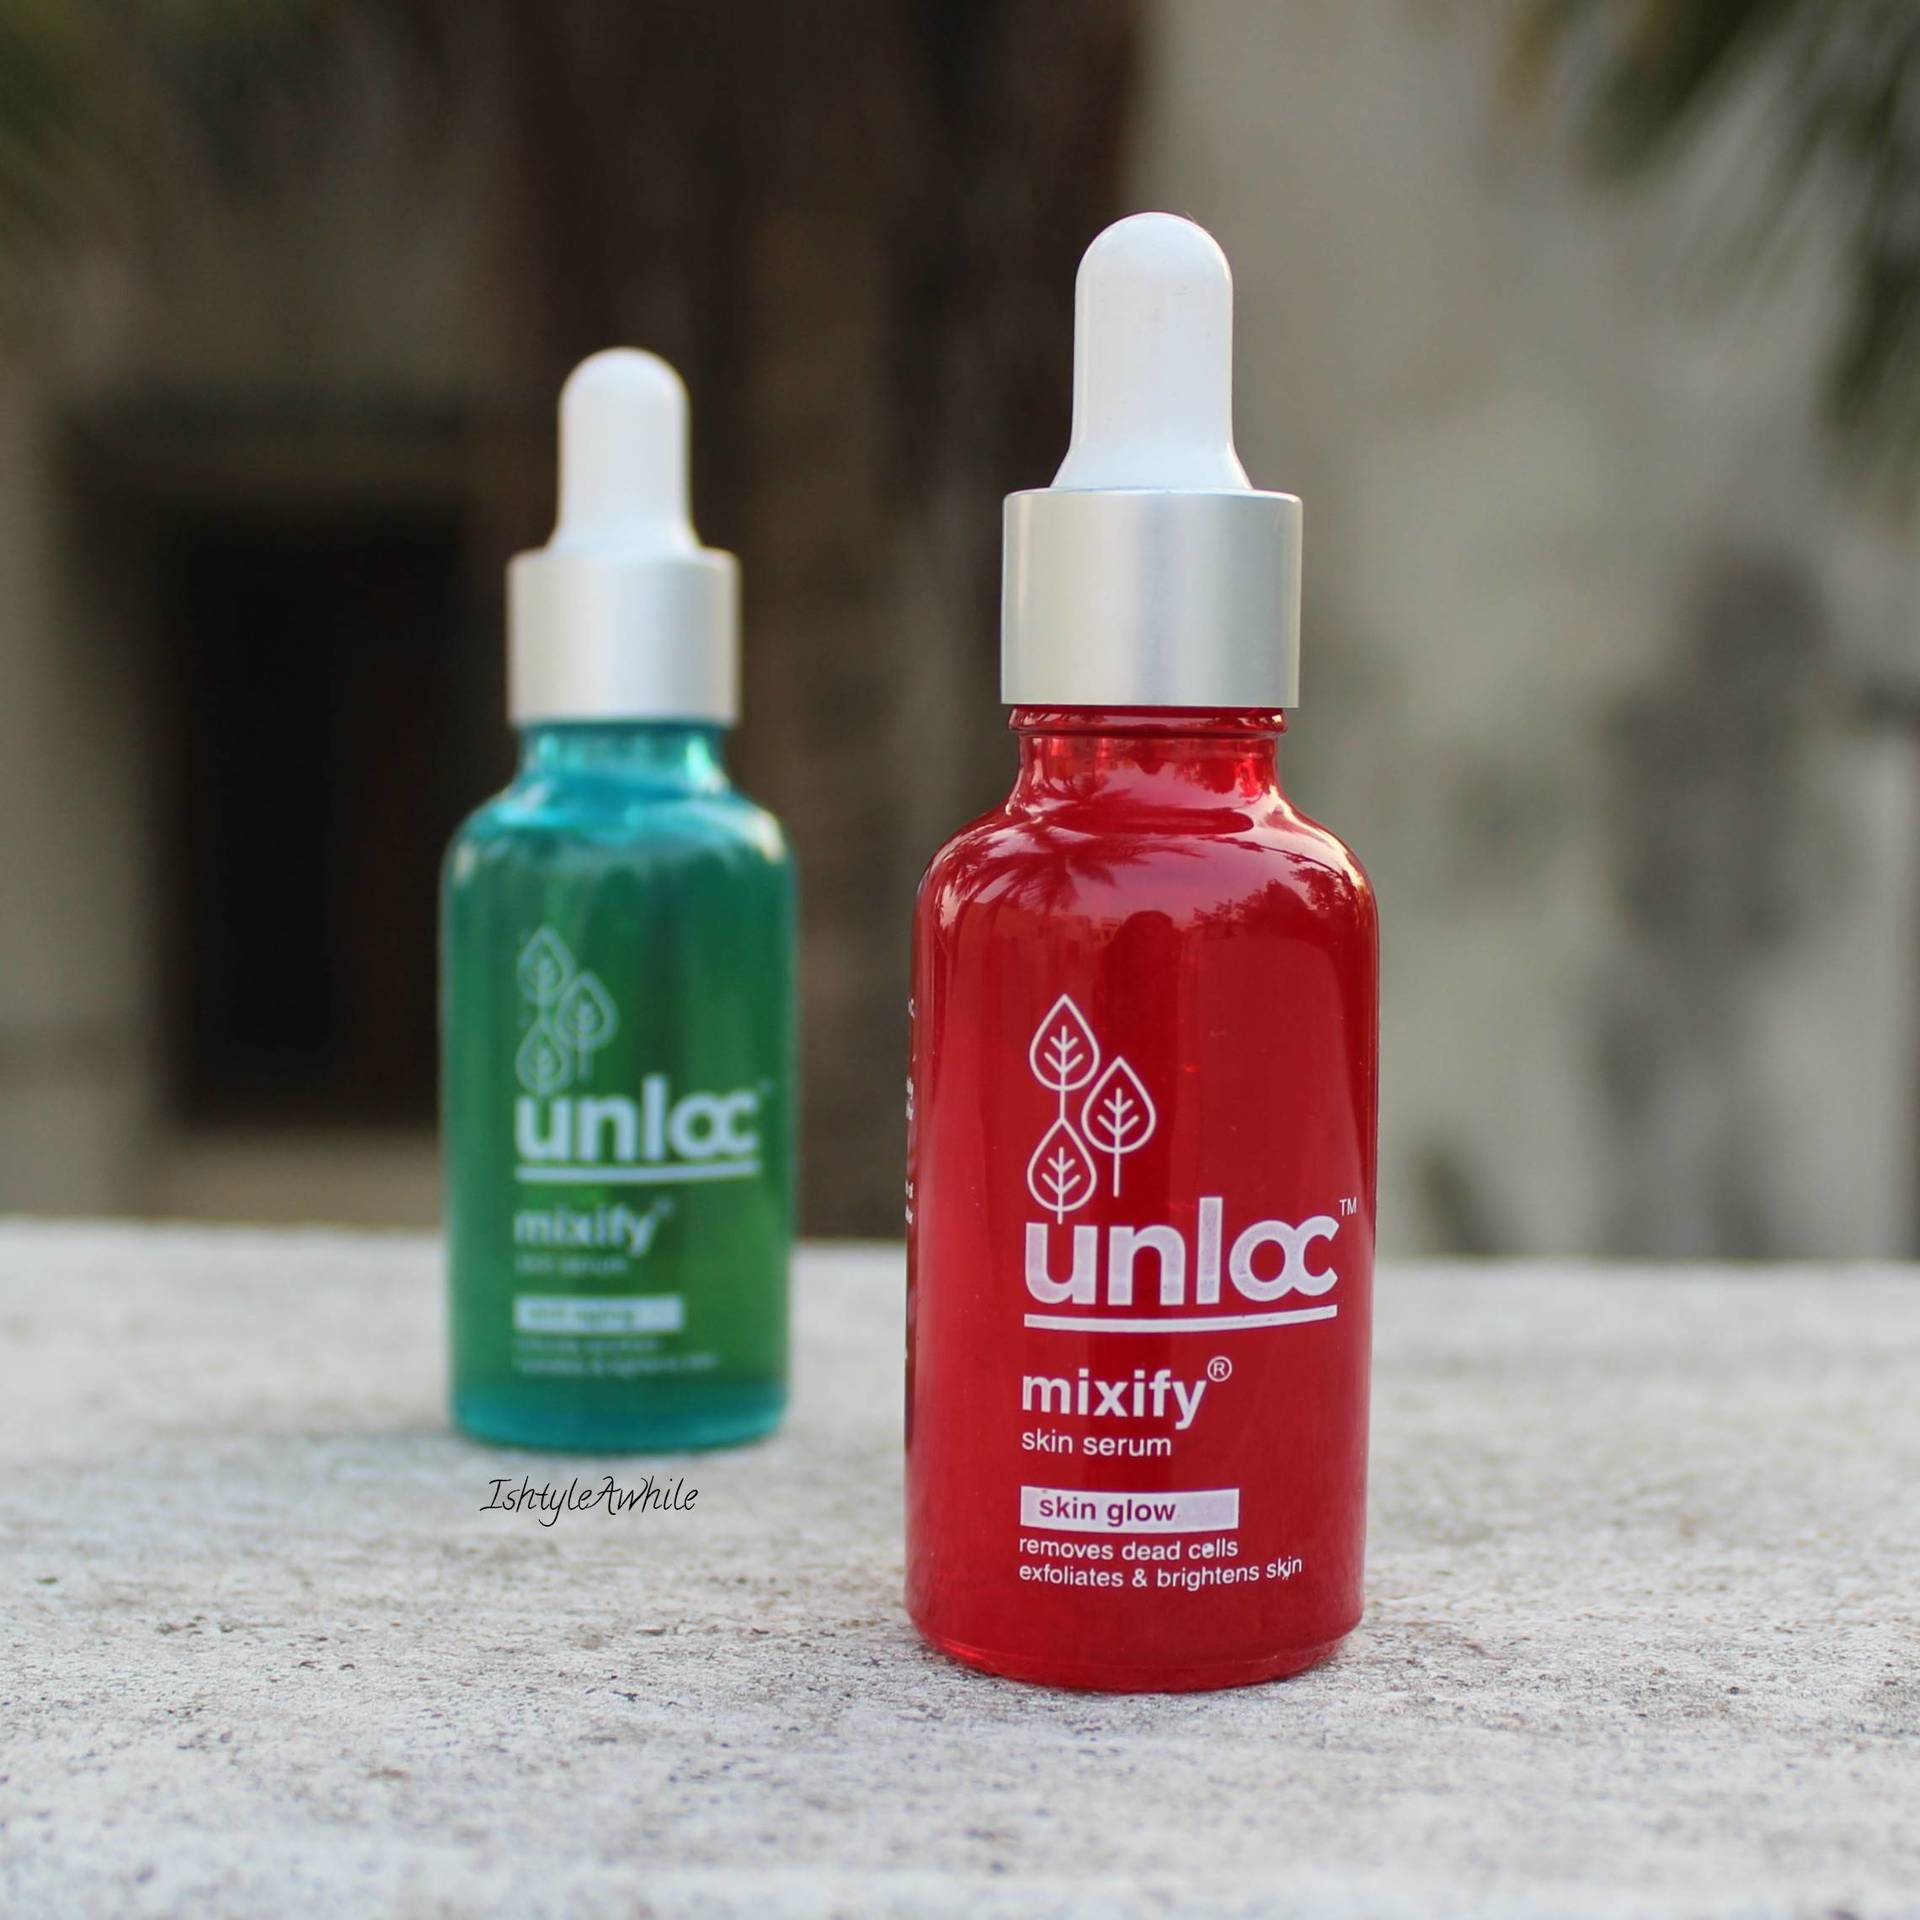 IshtyleAwhile - unloc serum_review